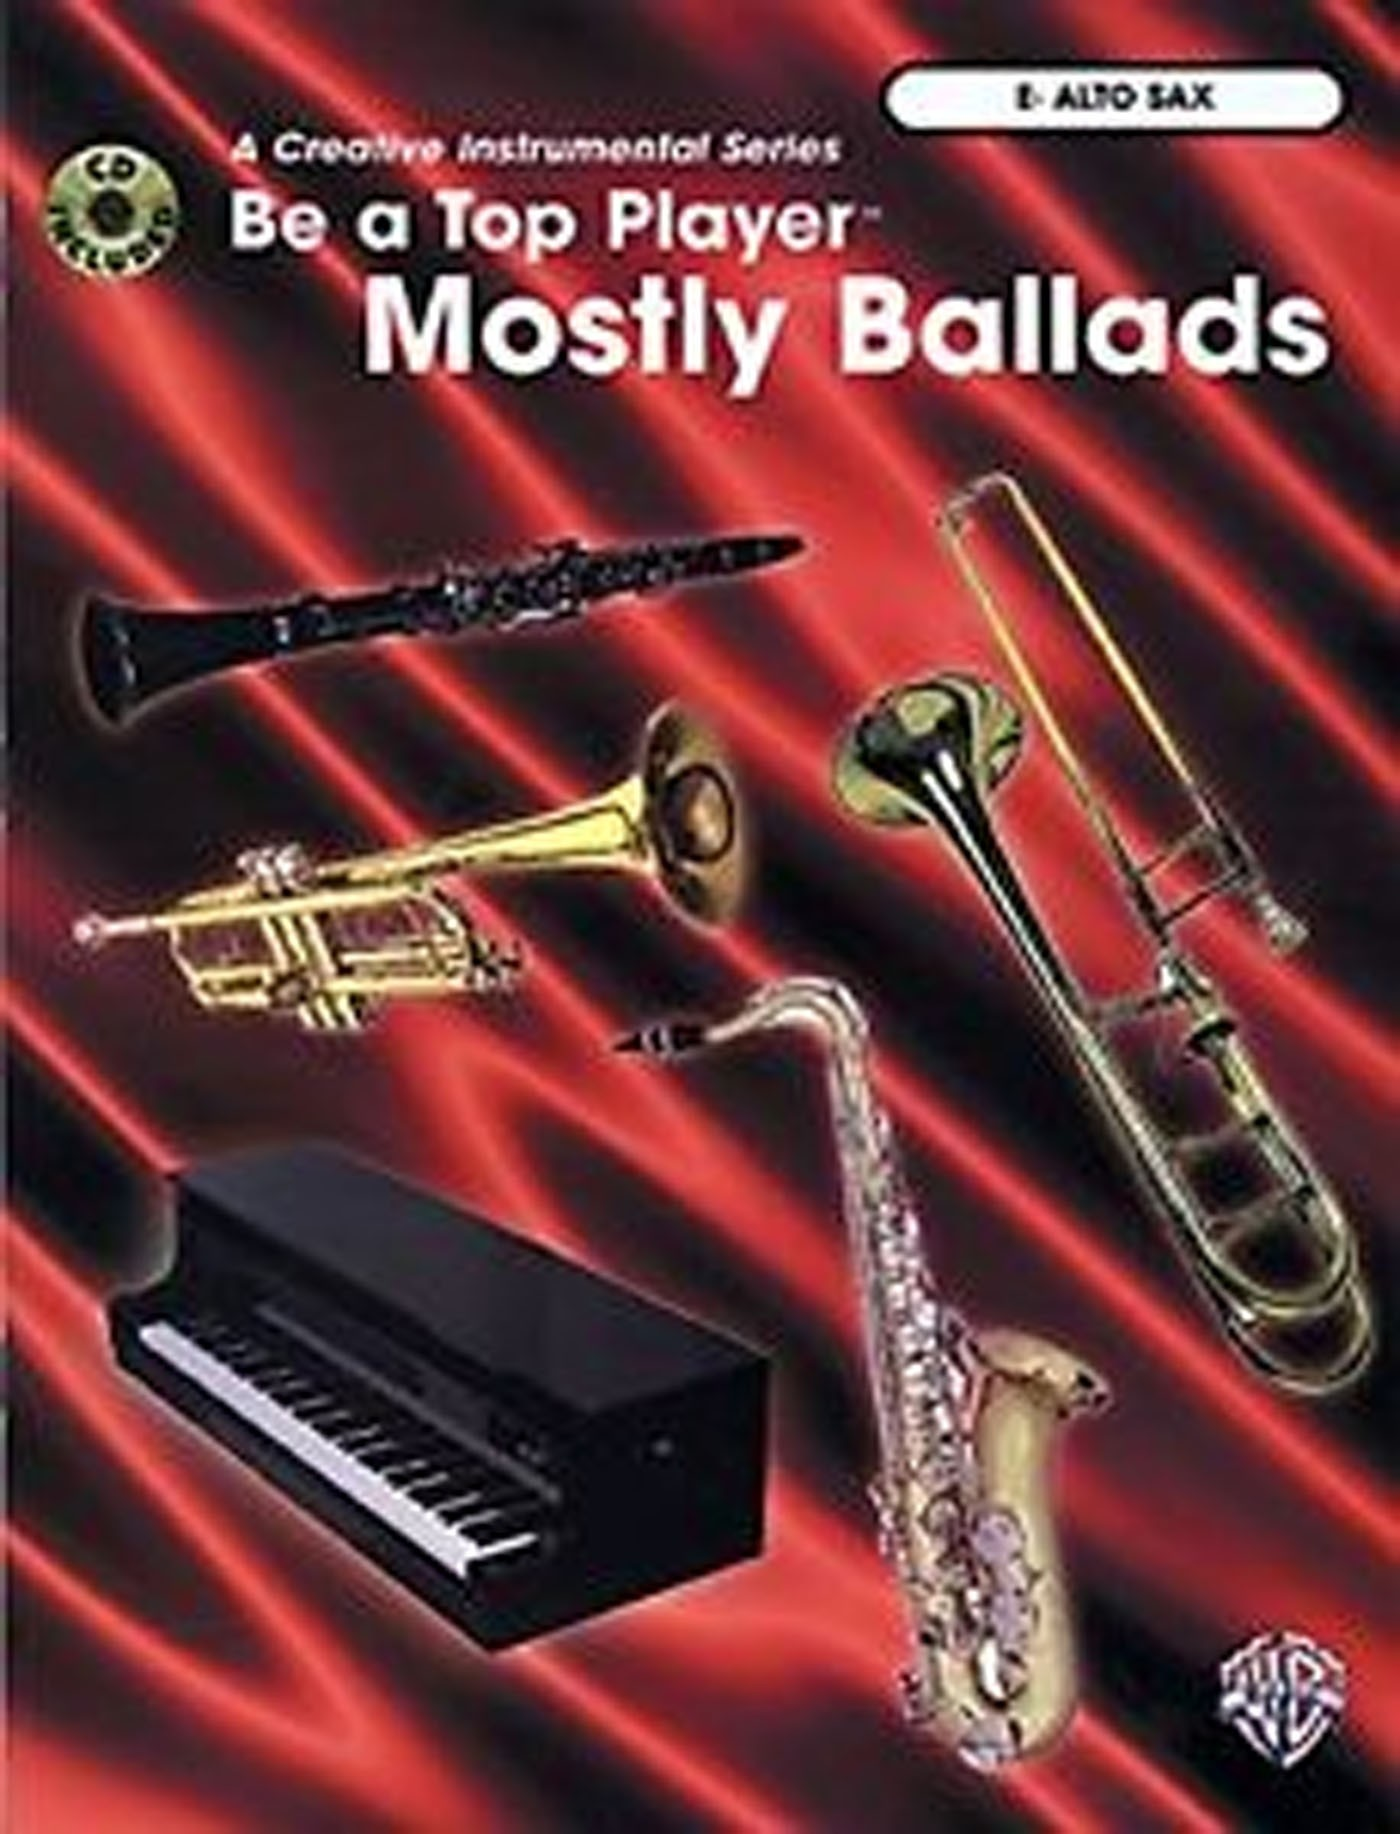 Be A Top Player Mostly Ballads Eb Alto Saxophone Book & CD Orchestral Backing S158